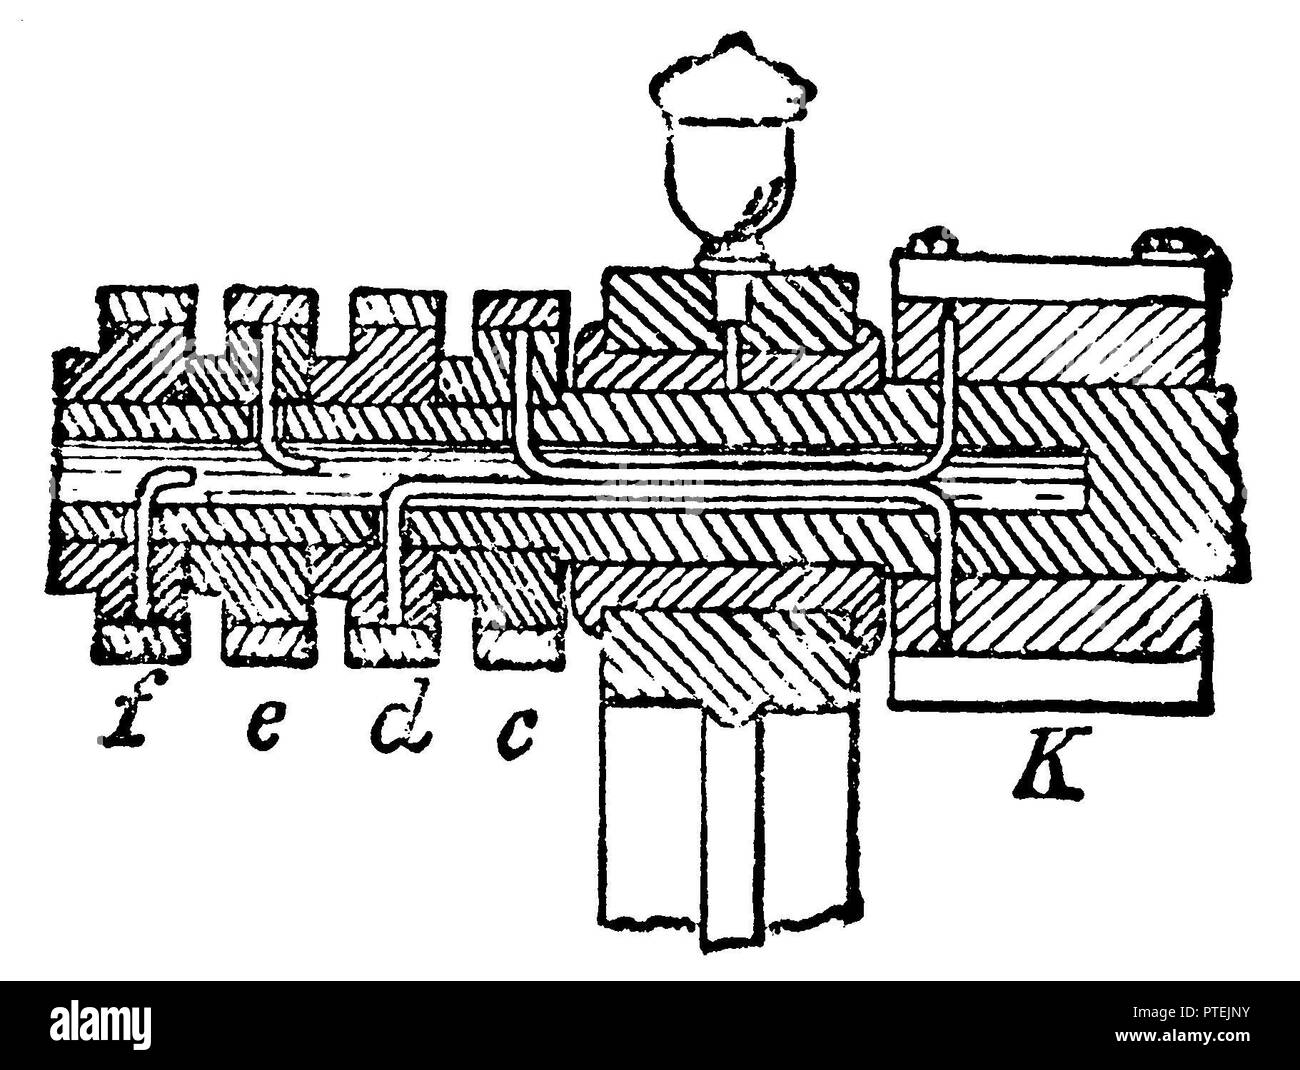 Dc Generator Stock Photos & Dc Generator Stock Images - Alamy